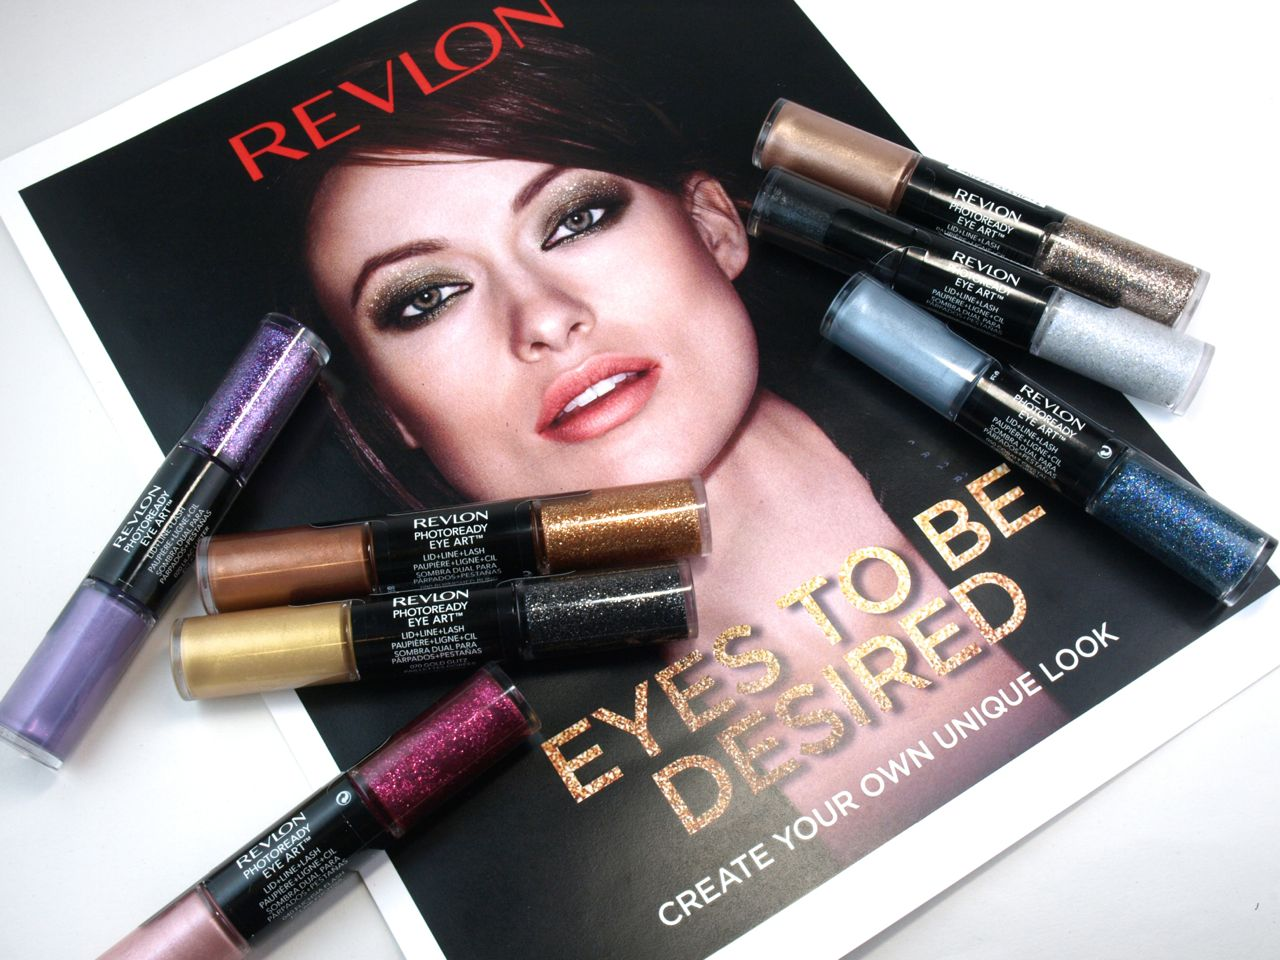 Revlon Photoready Eye Art Lid + Line + Lash: Review and Swatches